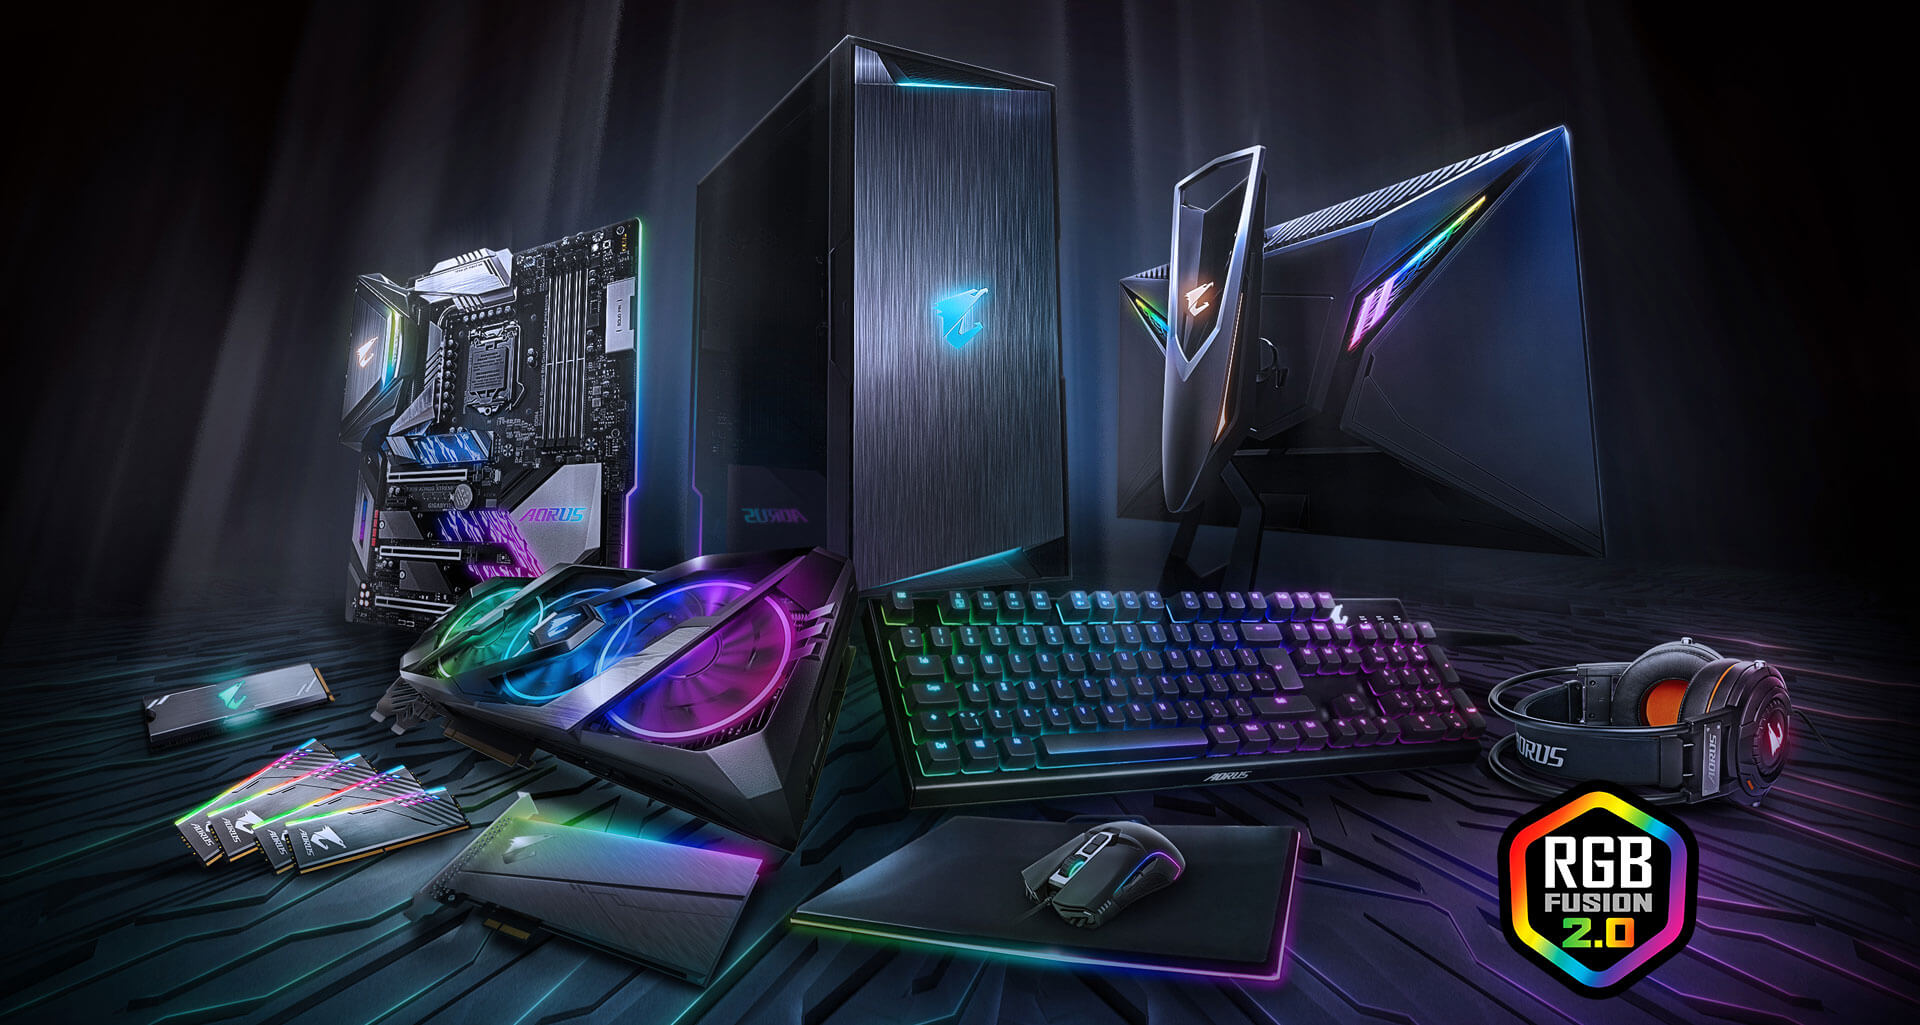 B360m Aorus Gaming 3 Rev 10 Motherboard Gigabyte Global Of 3v So Series Wiring Was The Way To Go My Looked Like This With A Dazzling Array Products Supported Rgb Fusion Is Software That Brings It All Together Letting Your Accessories Synchronize Same Beat